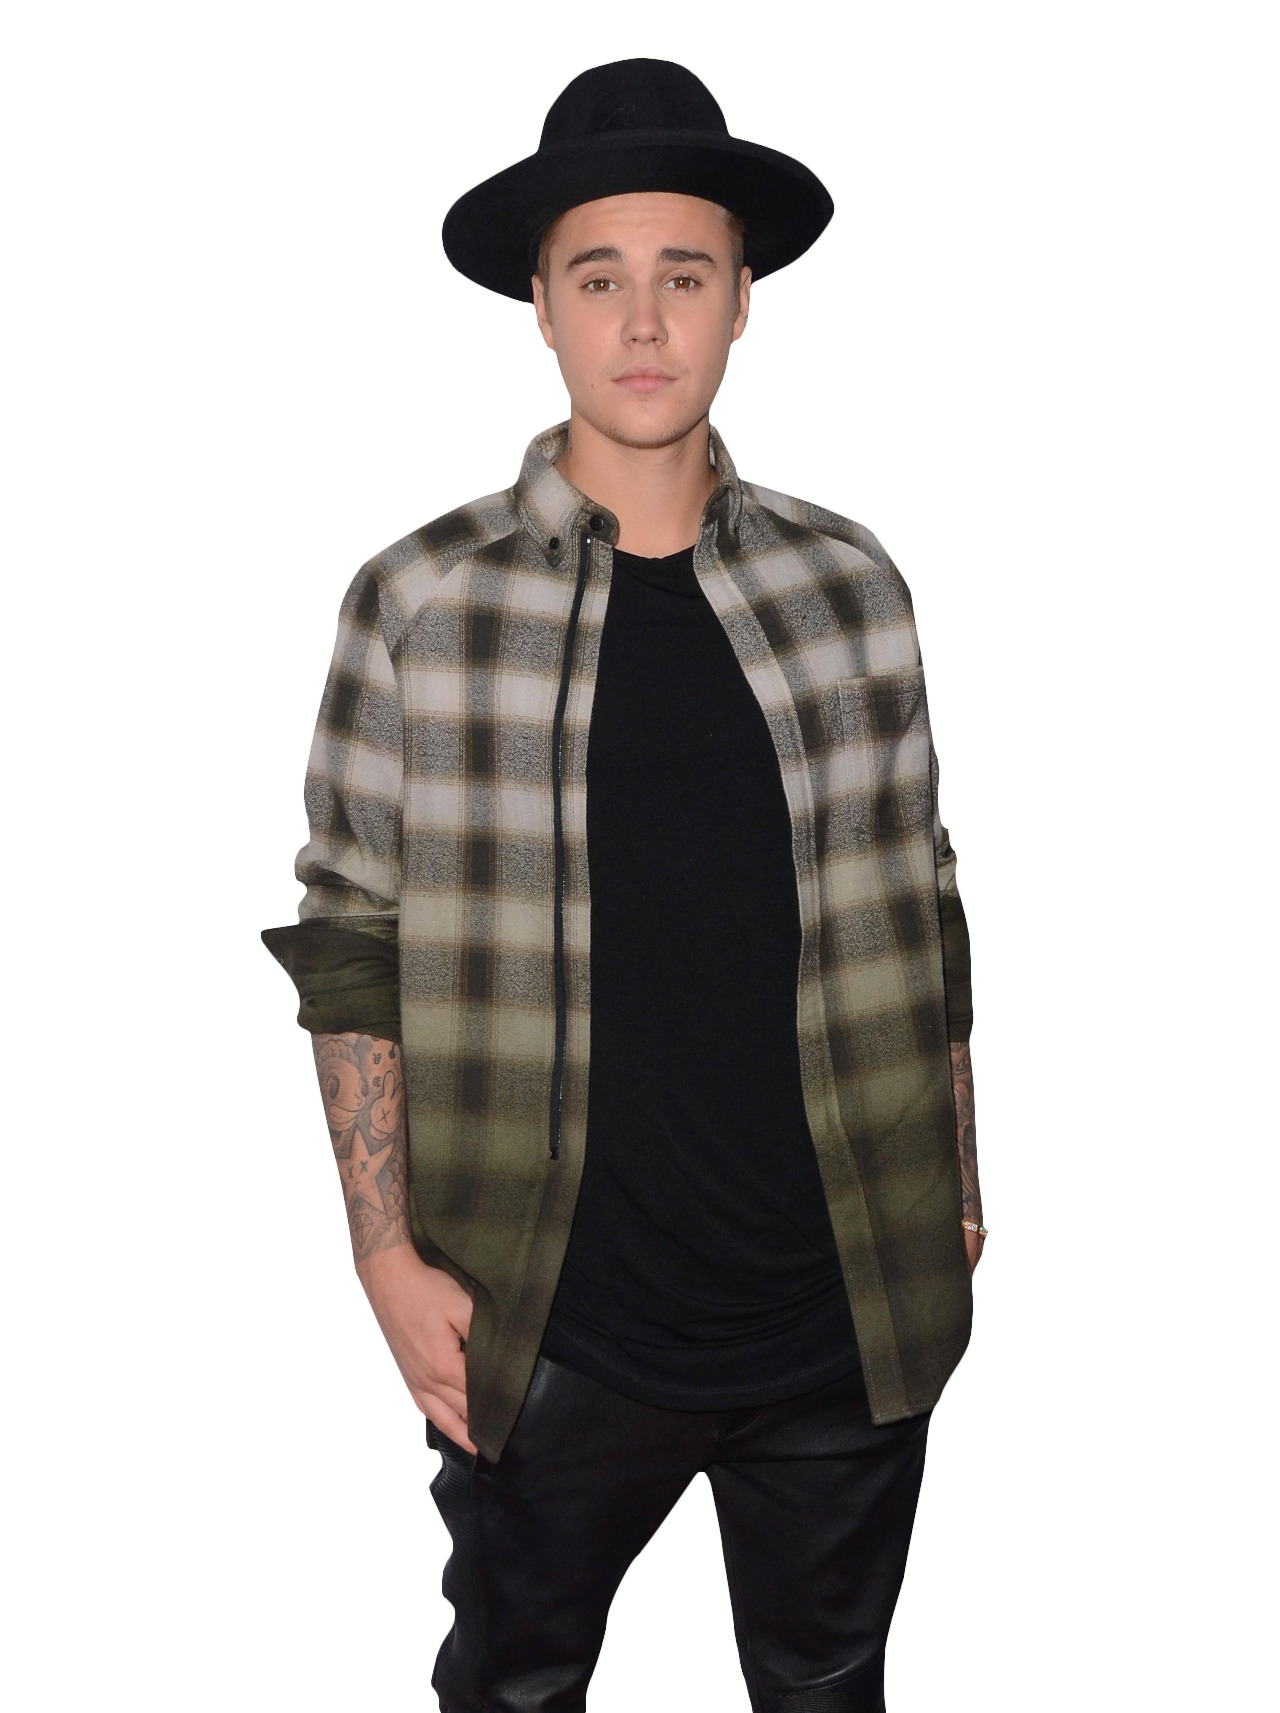 Justin Bieber with Hat PNG Image